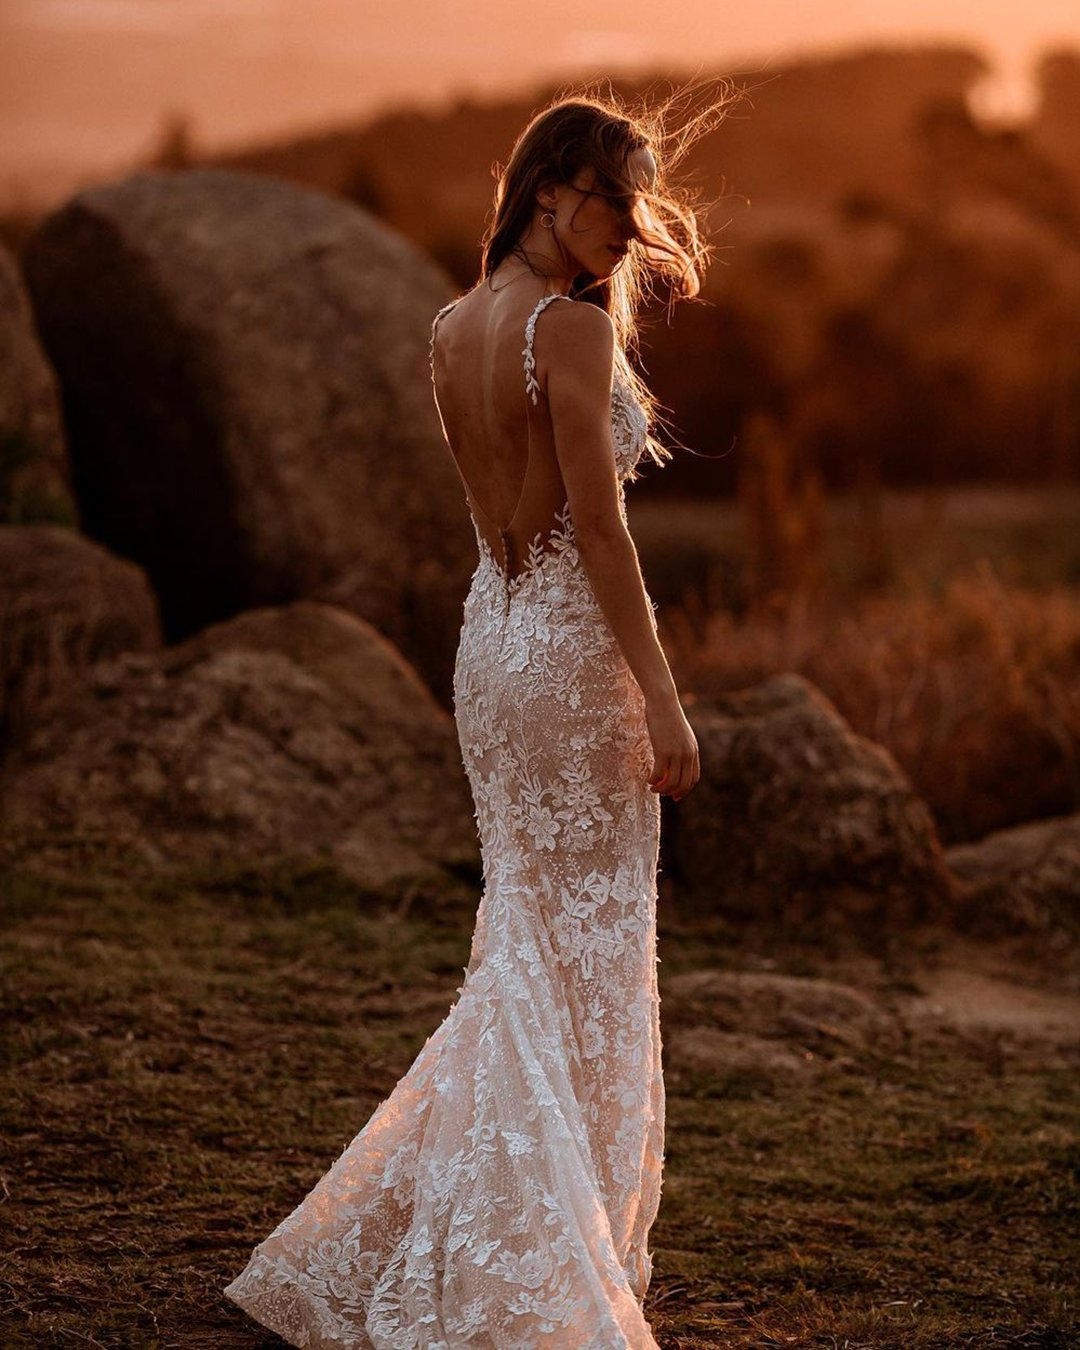 beach wedding dresses sheath low back with spaghetti straps sexy mischadurrant